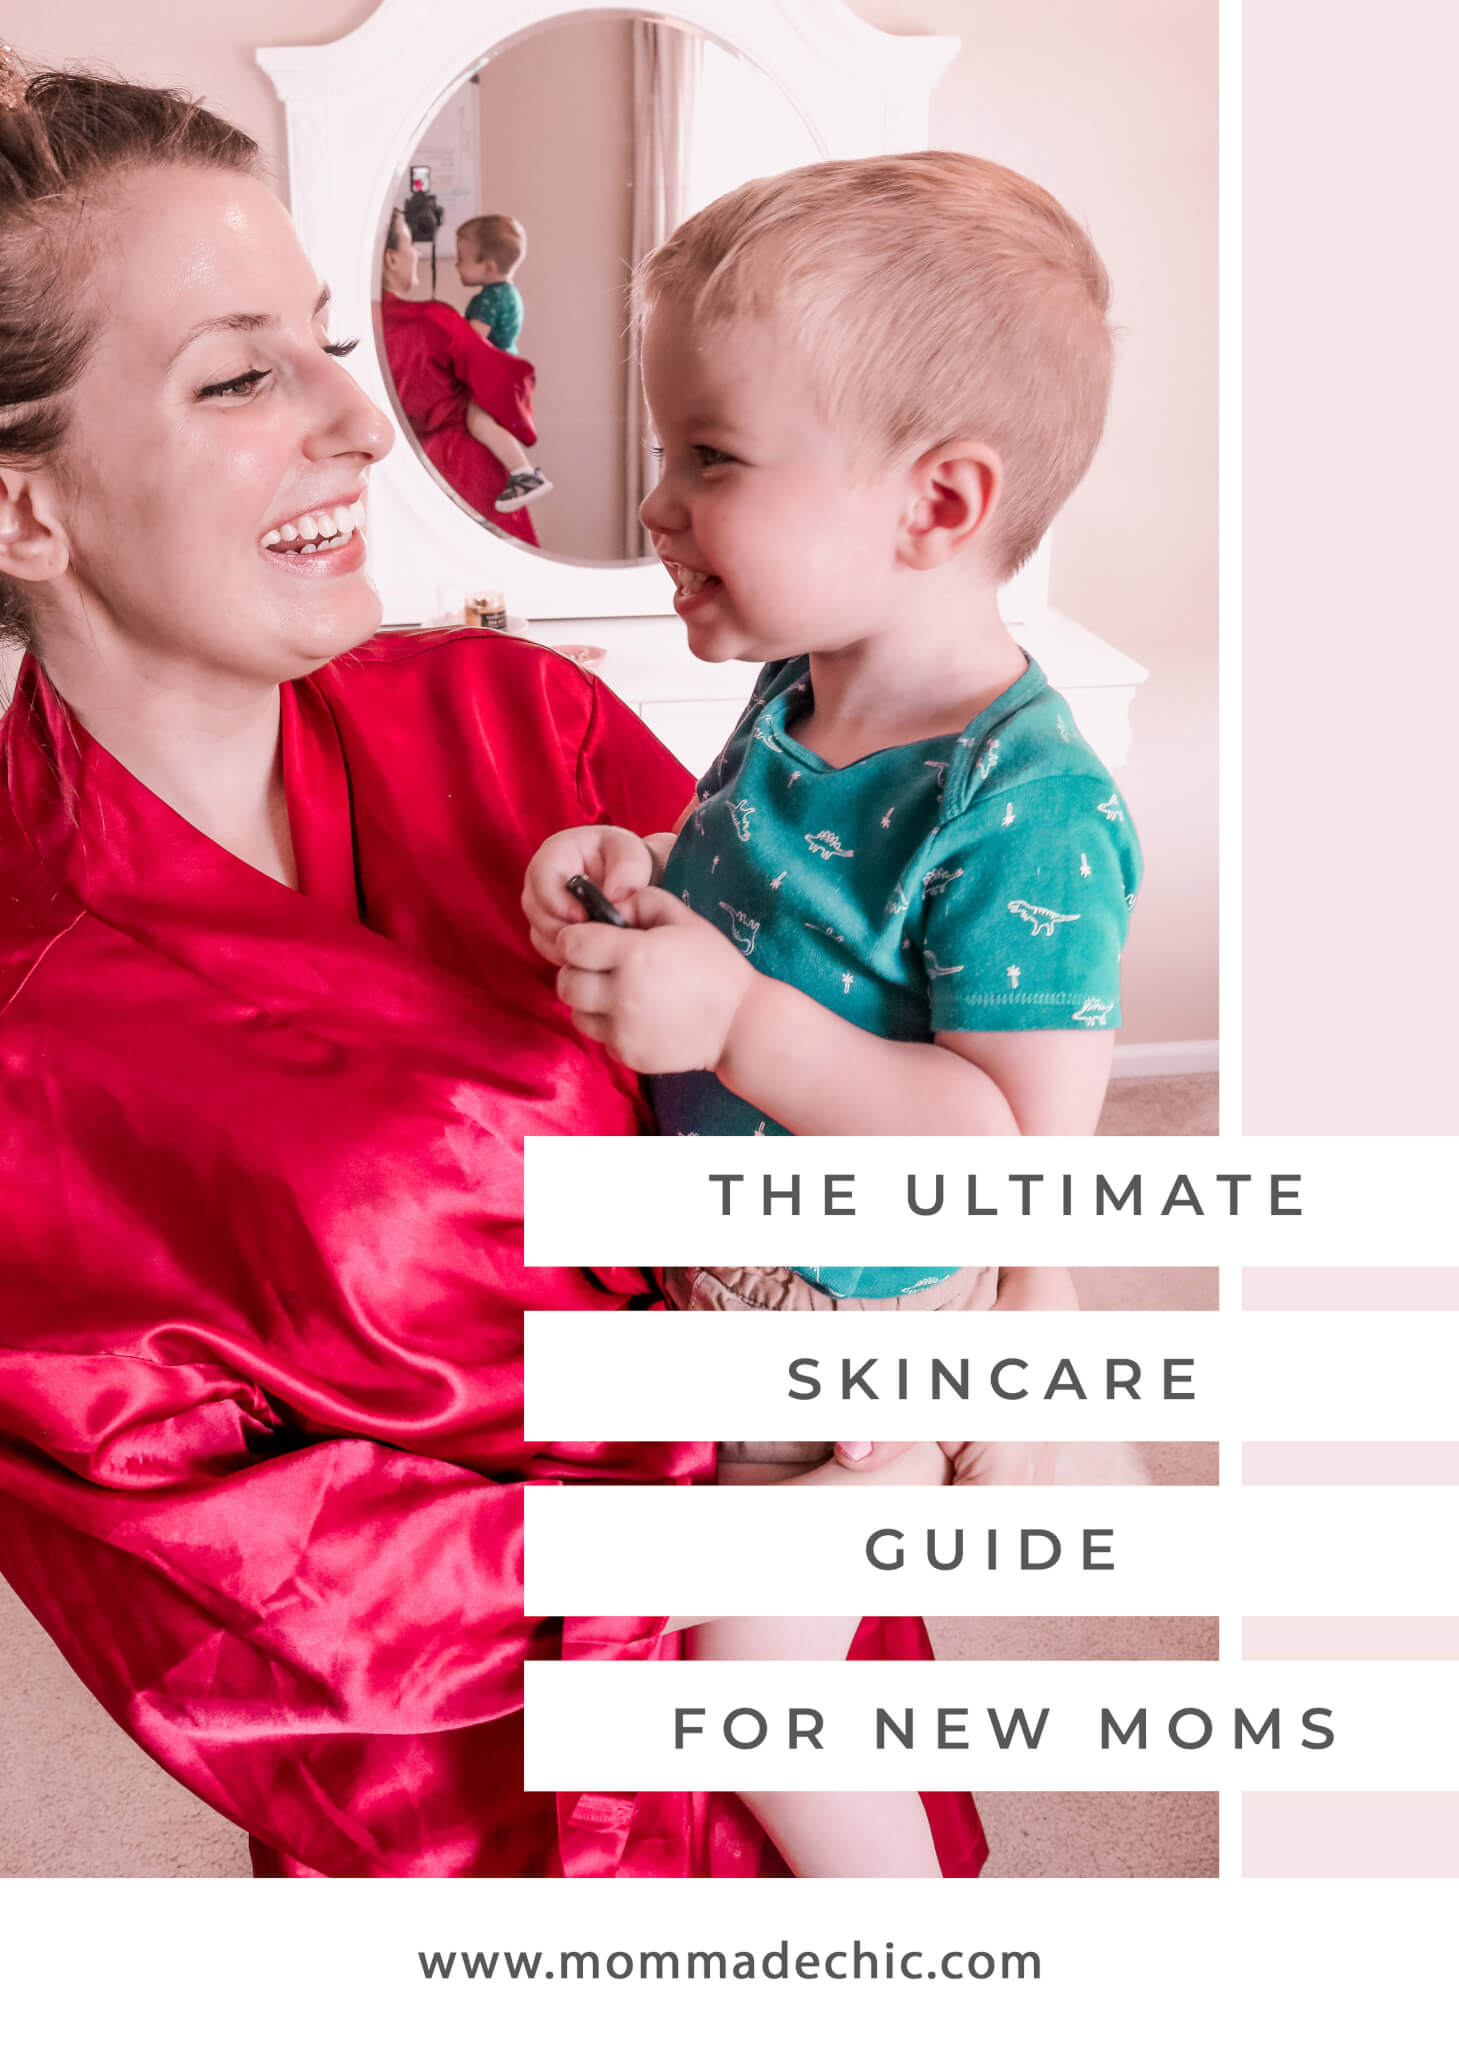 Skincare Tips for New Moms